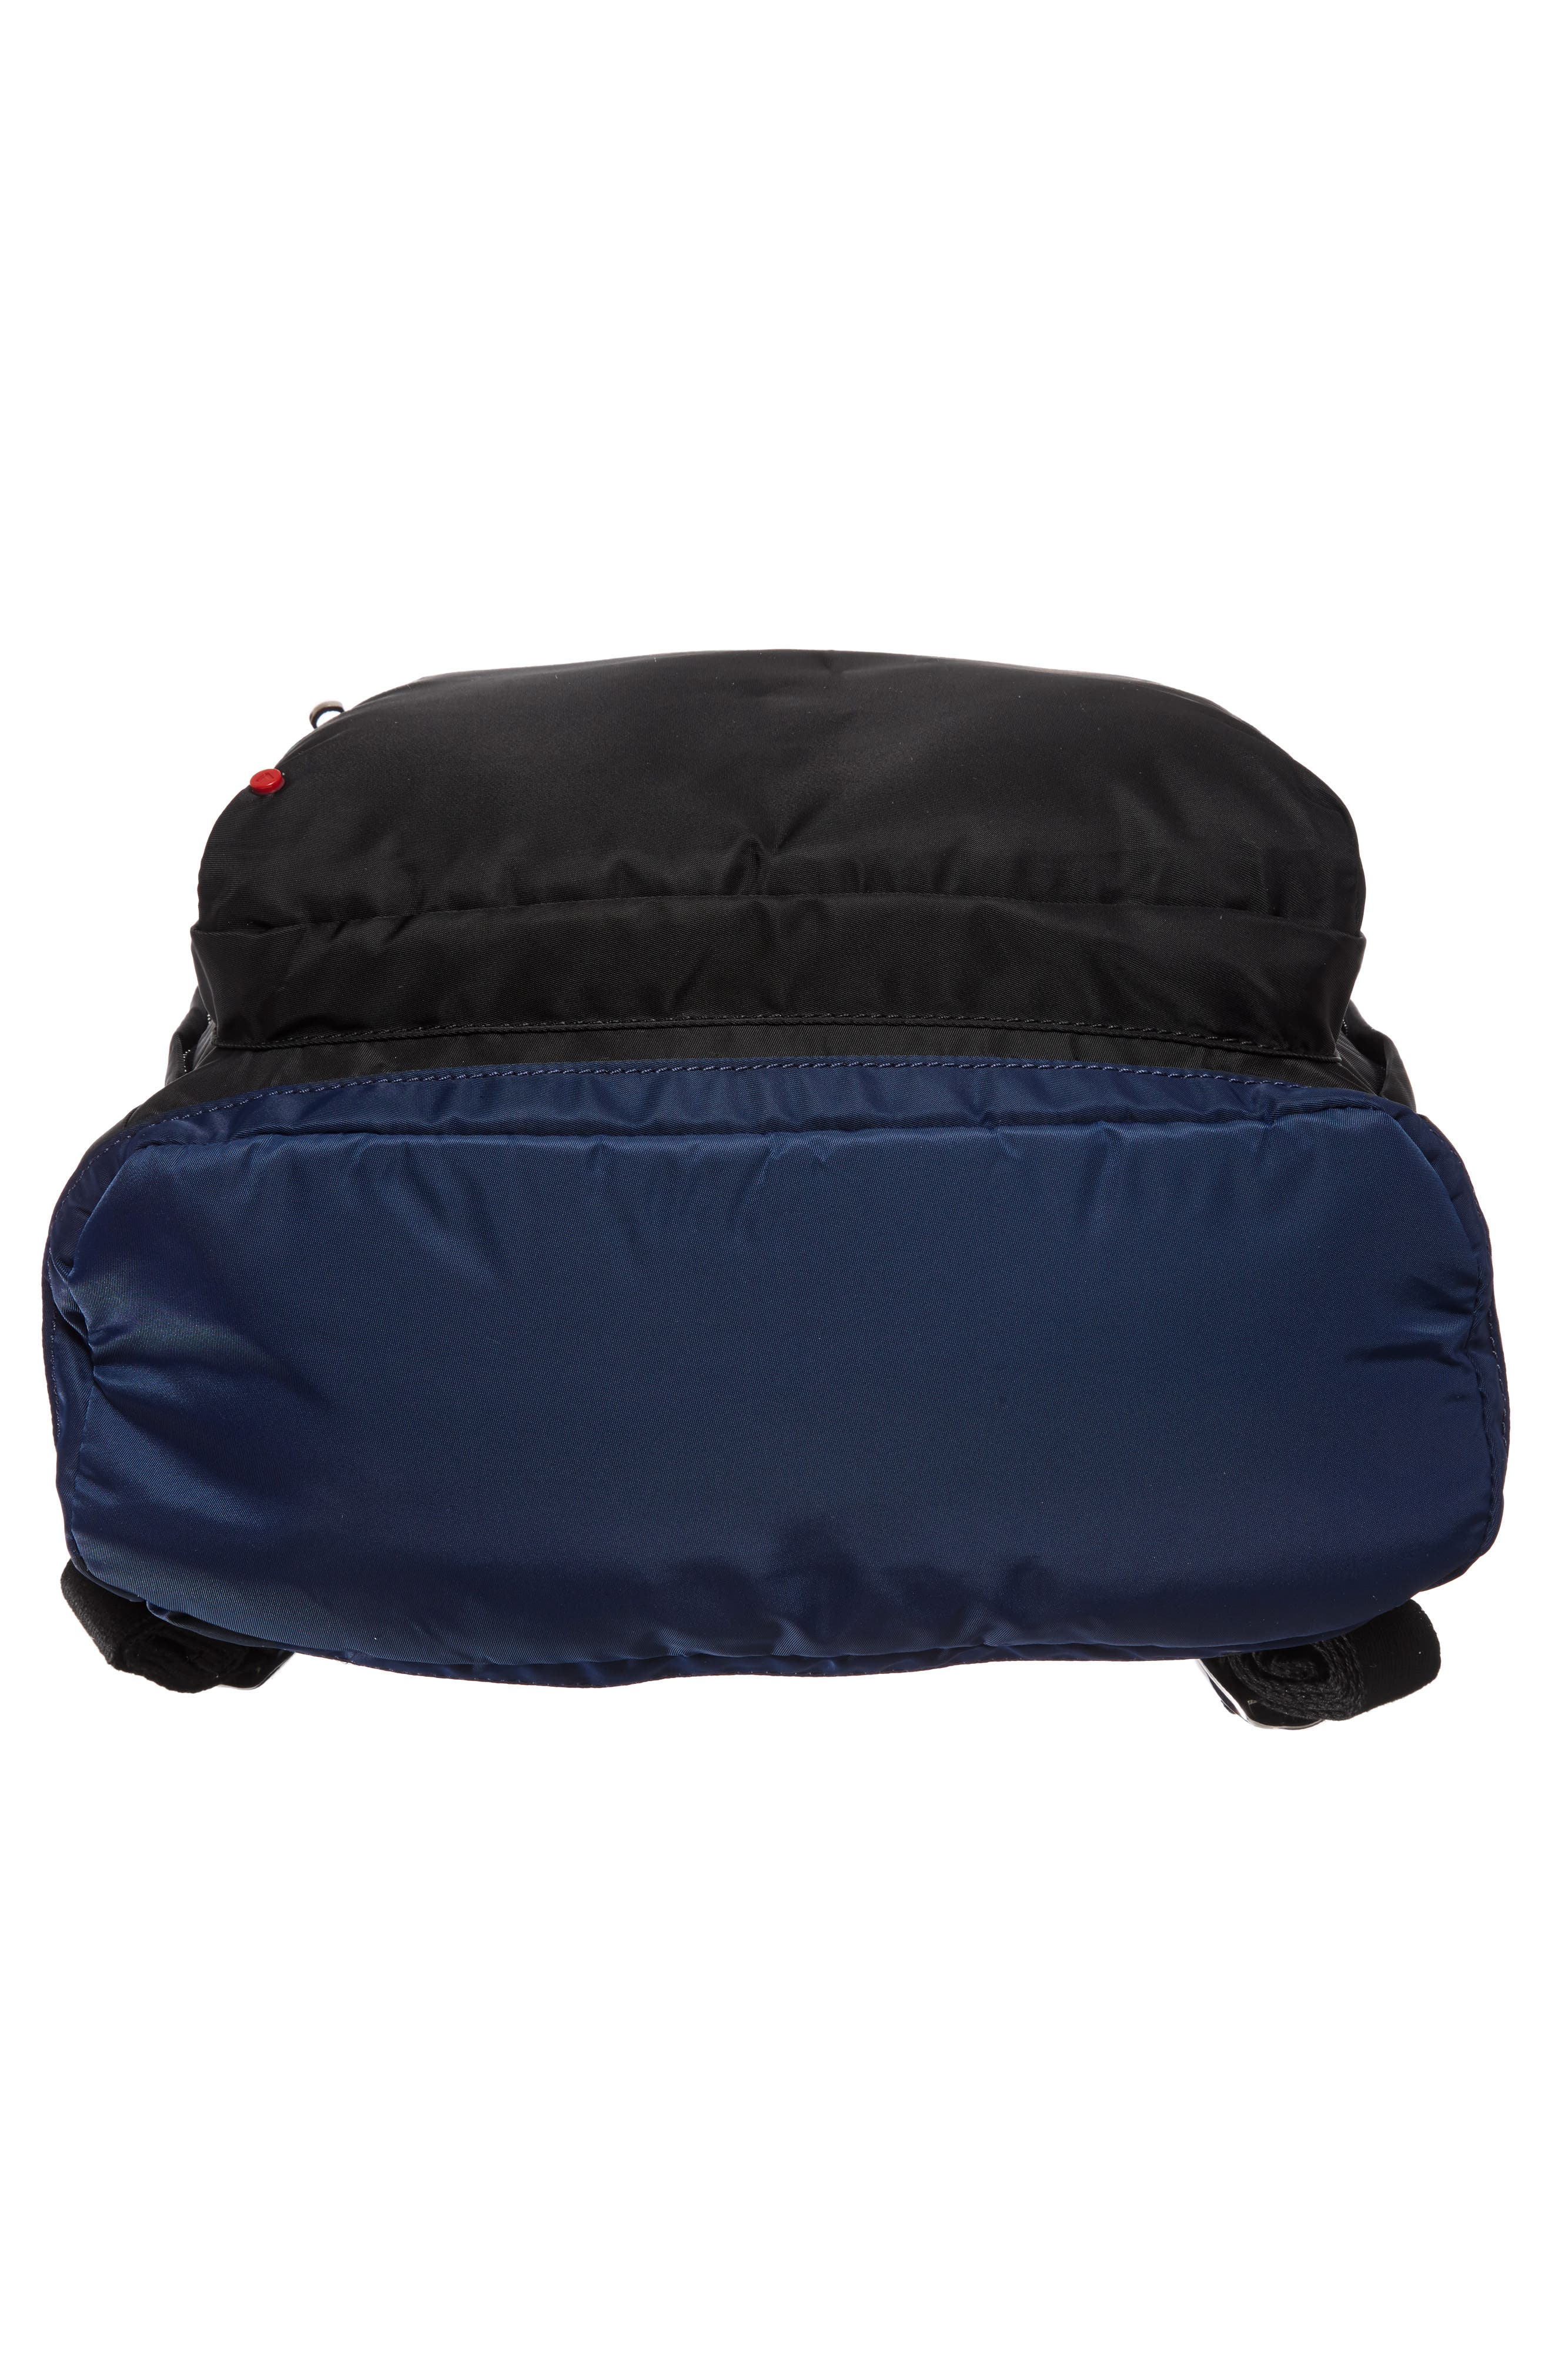 The Heights Adams Backpack,                             Alternate thumbnail 7, color,                             003